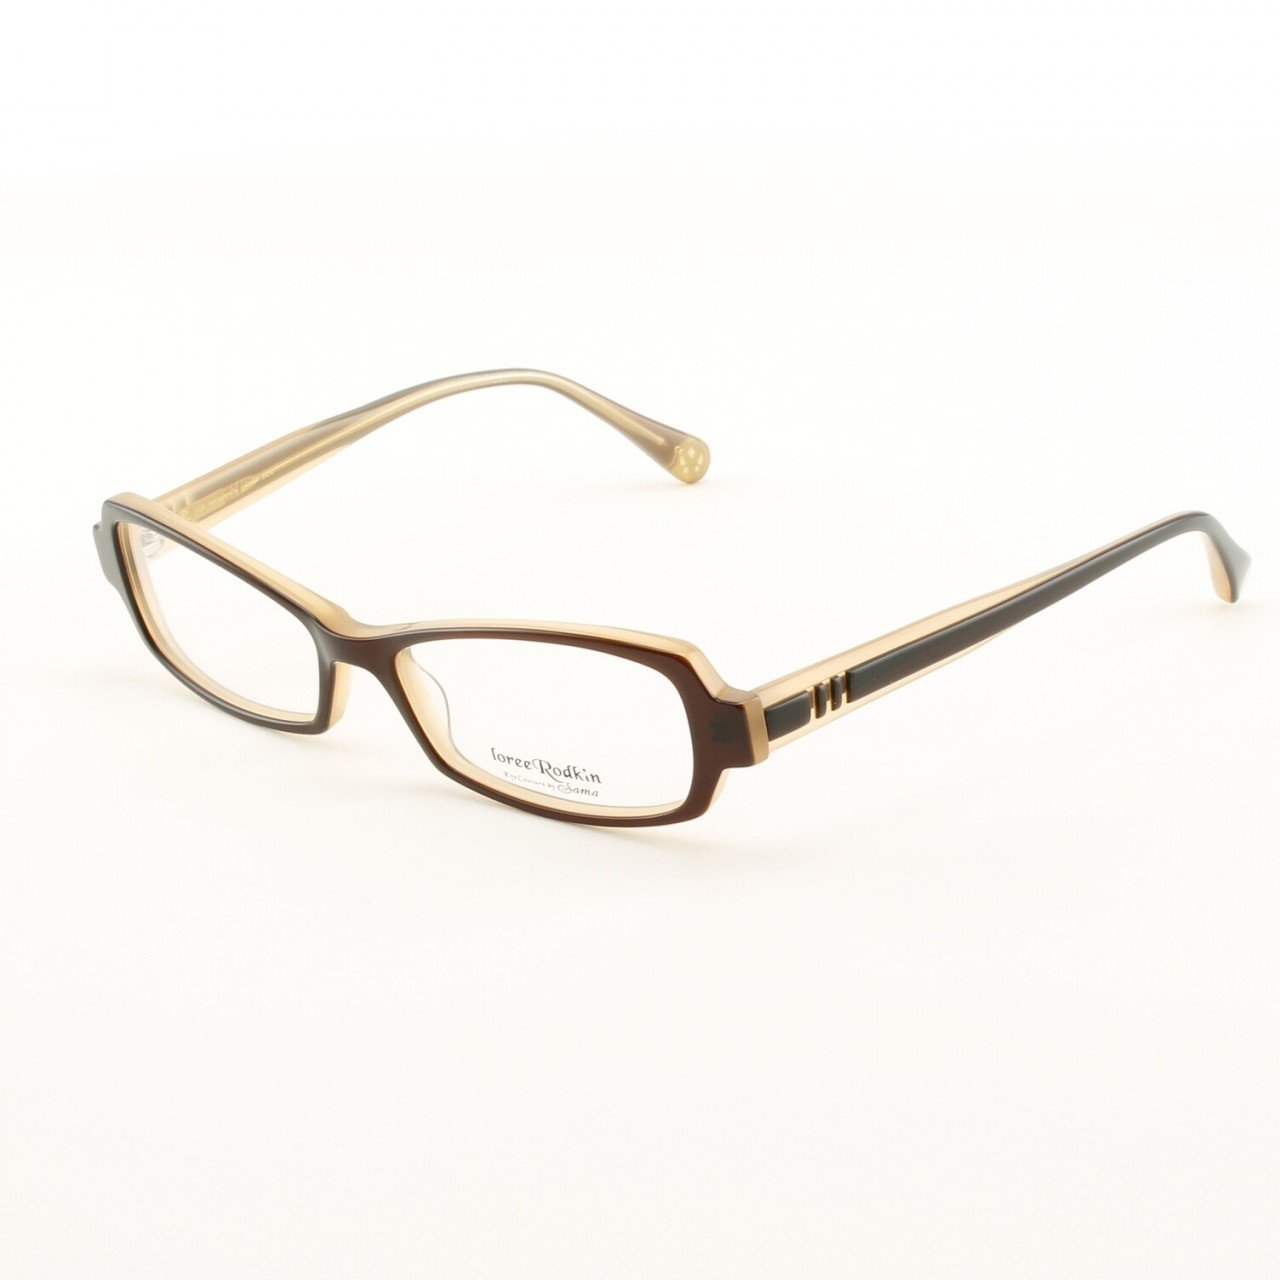 Loree Rodkin Isla Eyeglasses by Sama Col. Brown with Clear Lenses